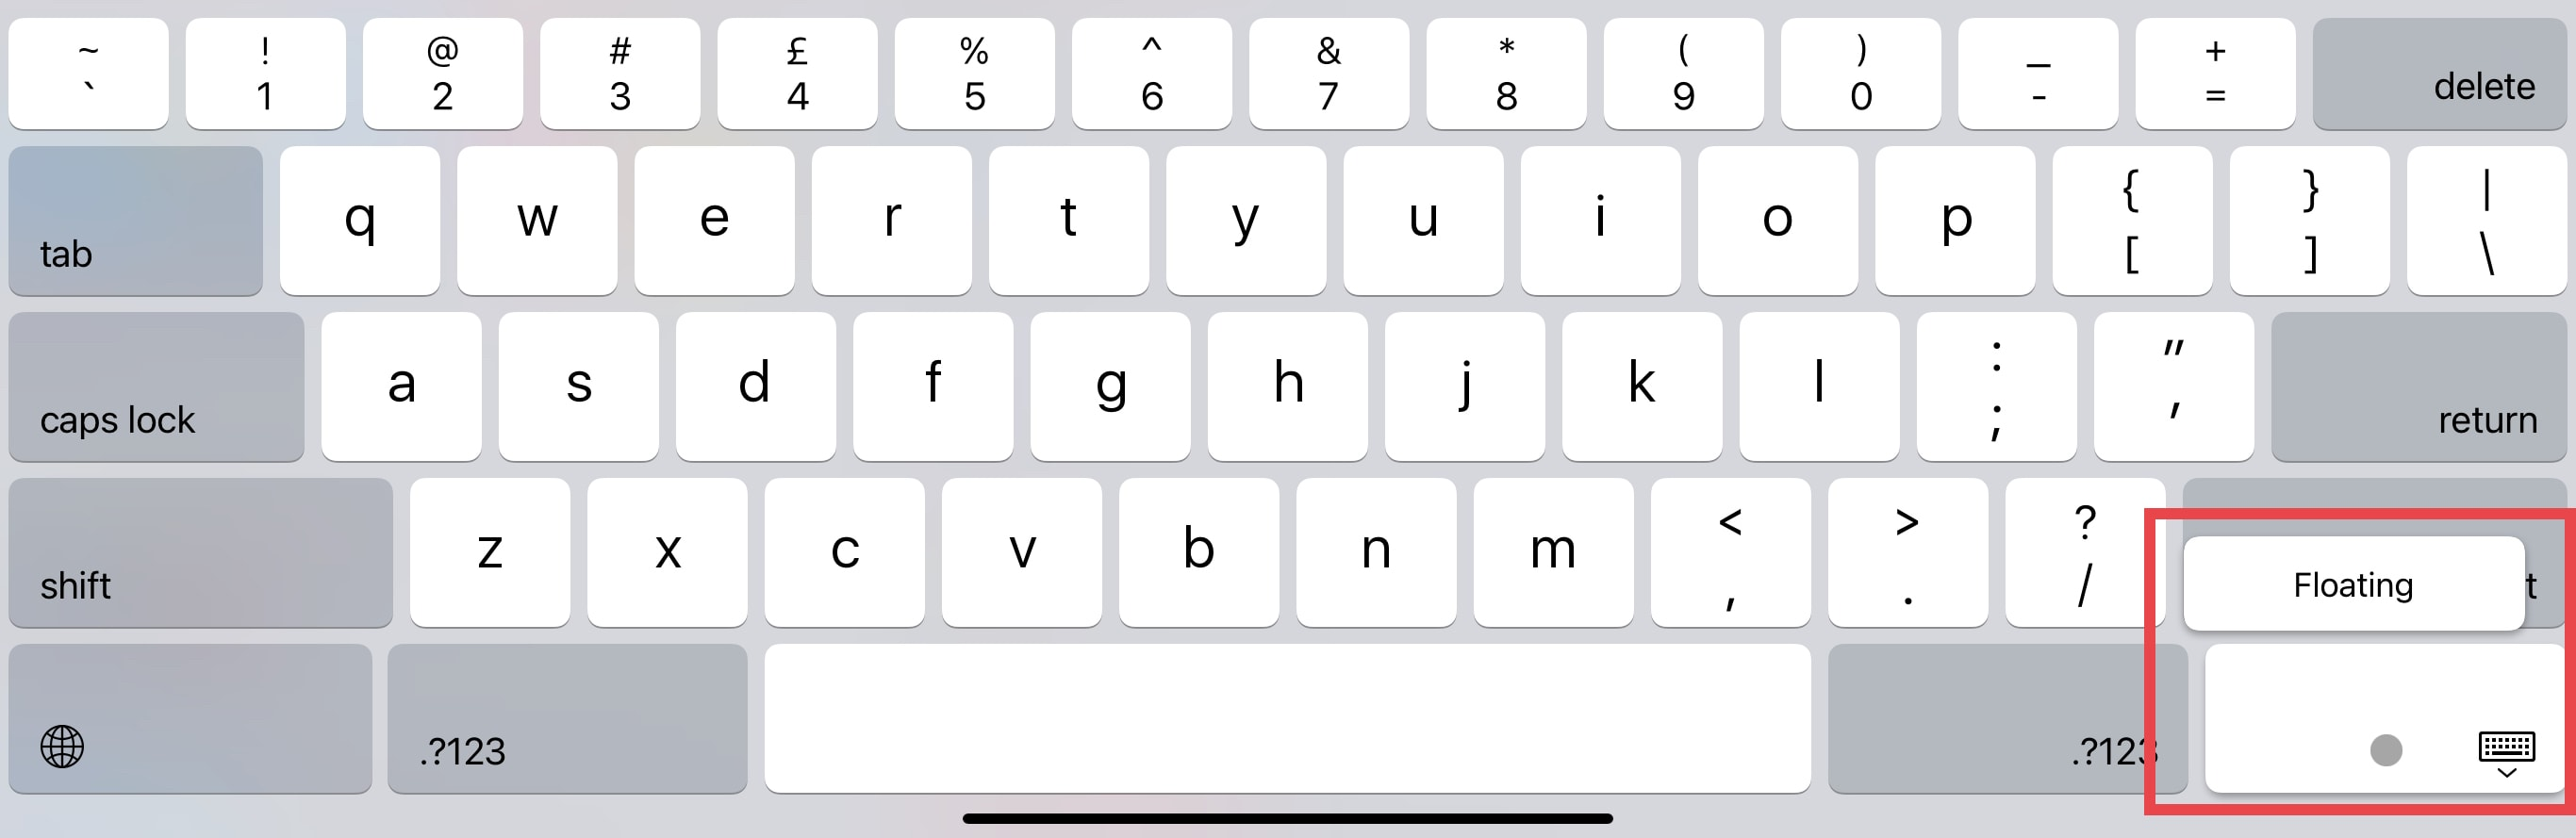 How to enable iPad's floating keyboard: Tap and hold the keyboard button, then select FLOATING